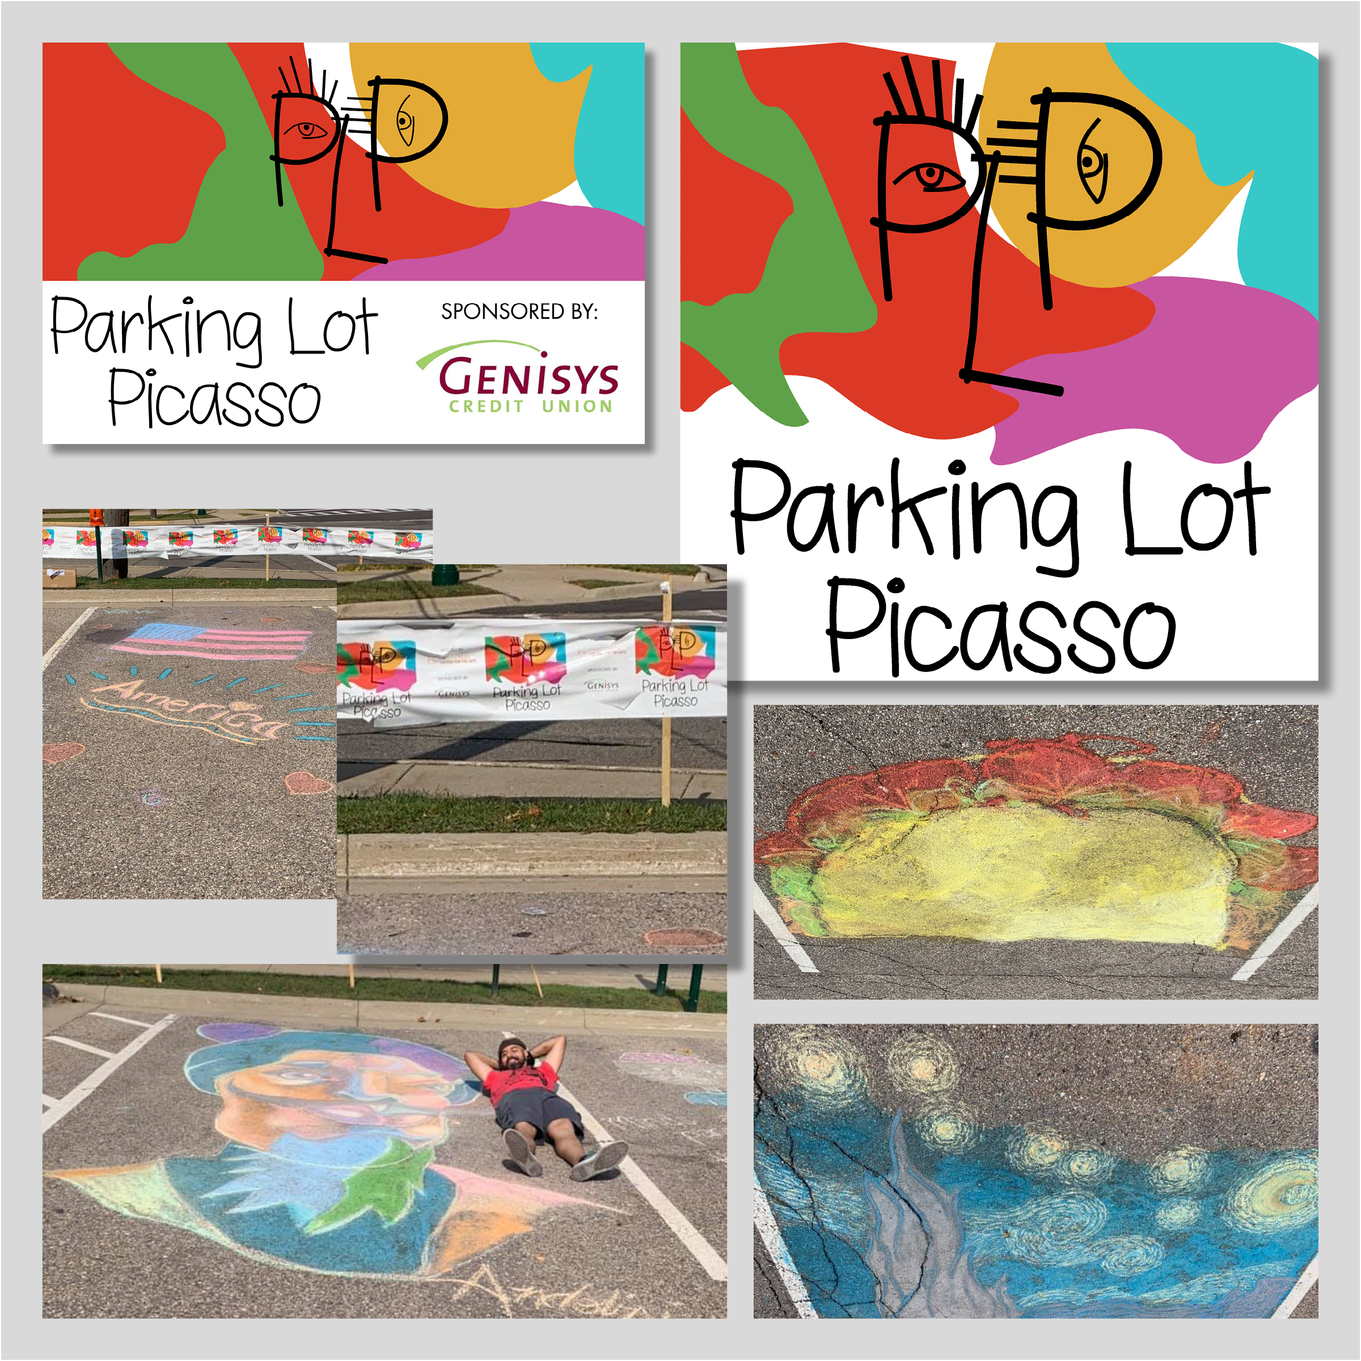 Parking Lot Picasso